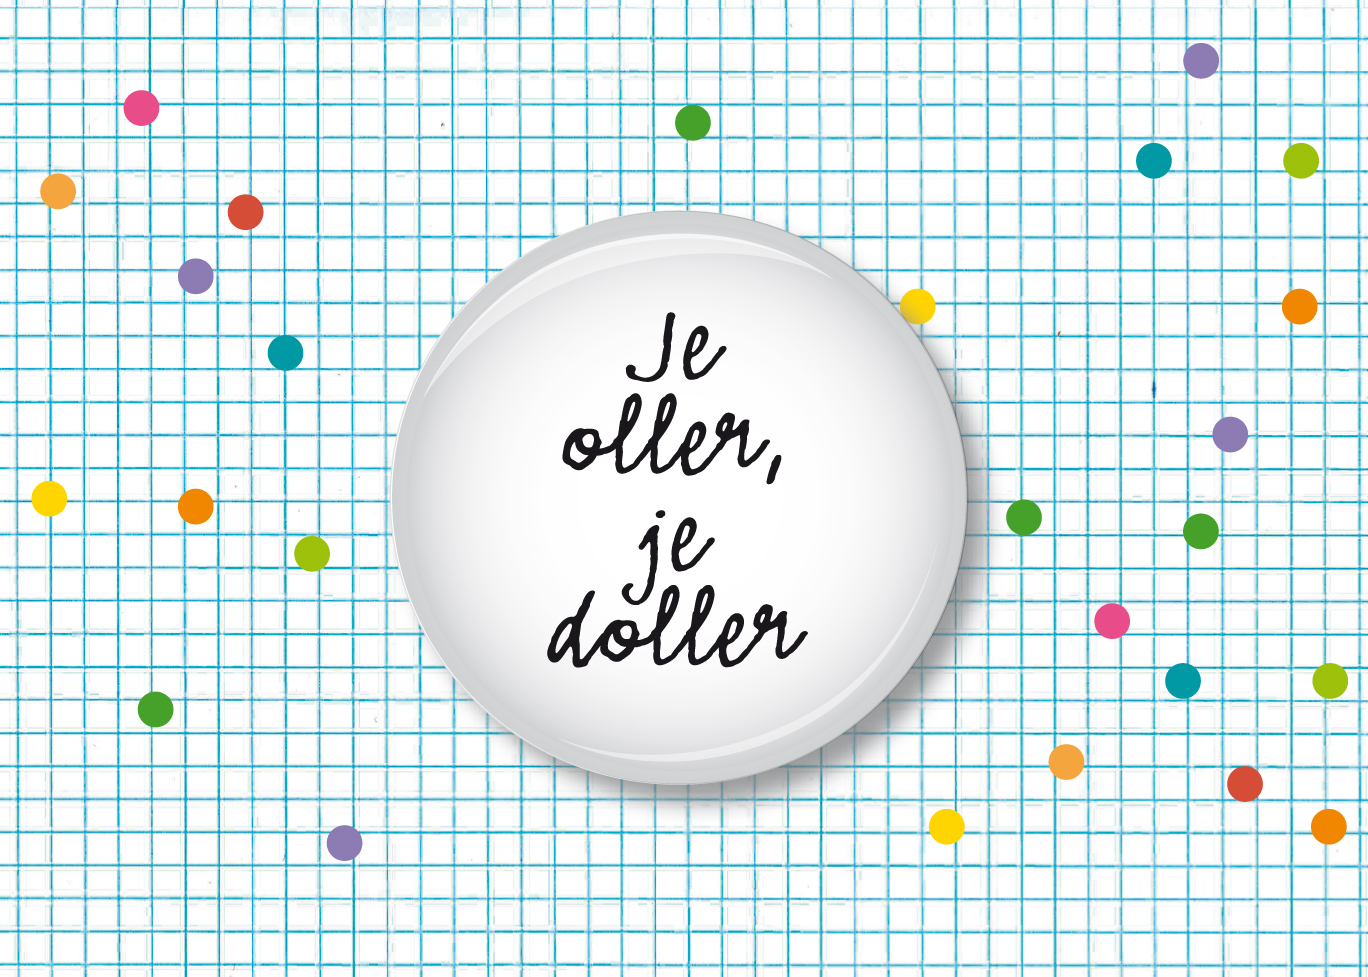 Button Je oller je doller